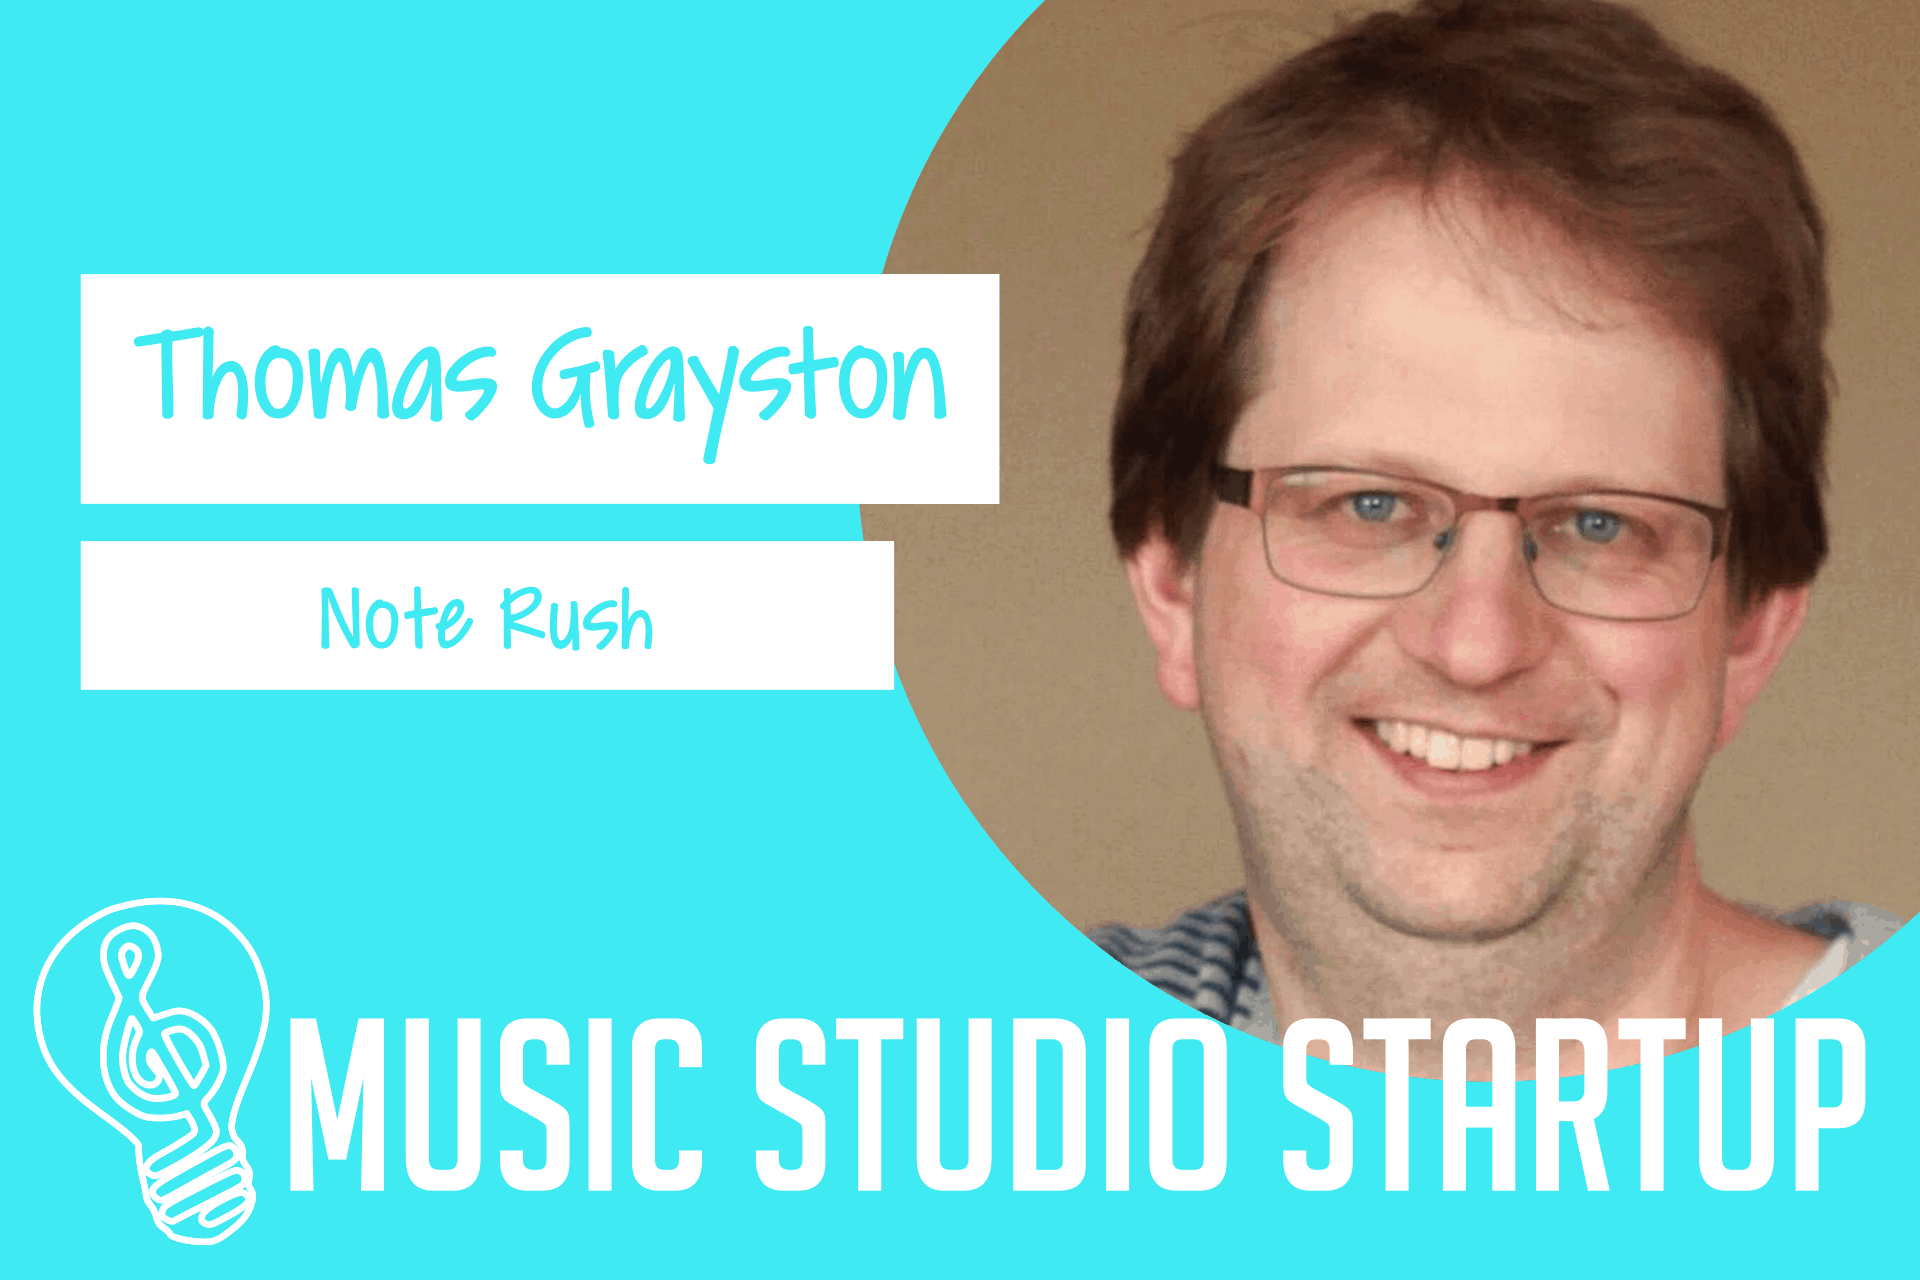 Episode 022 – Thomas Grayston of Note Rush on Developing and Launching an App (Part 2)